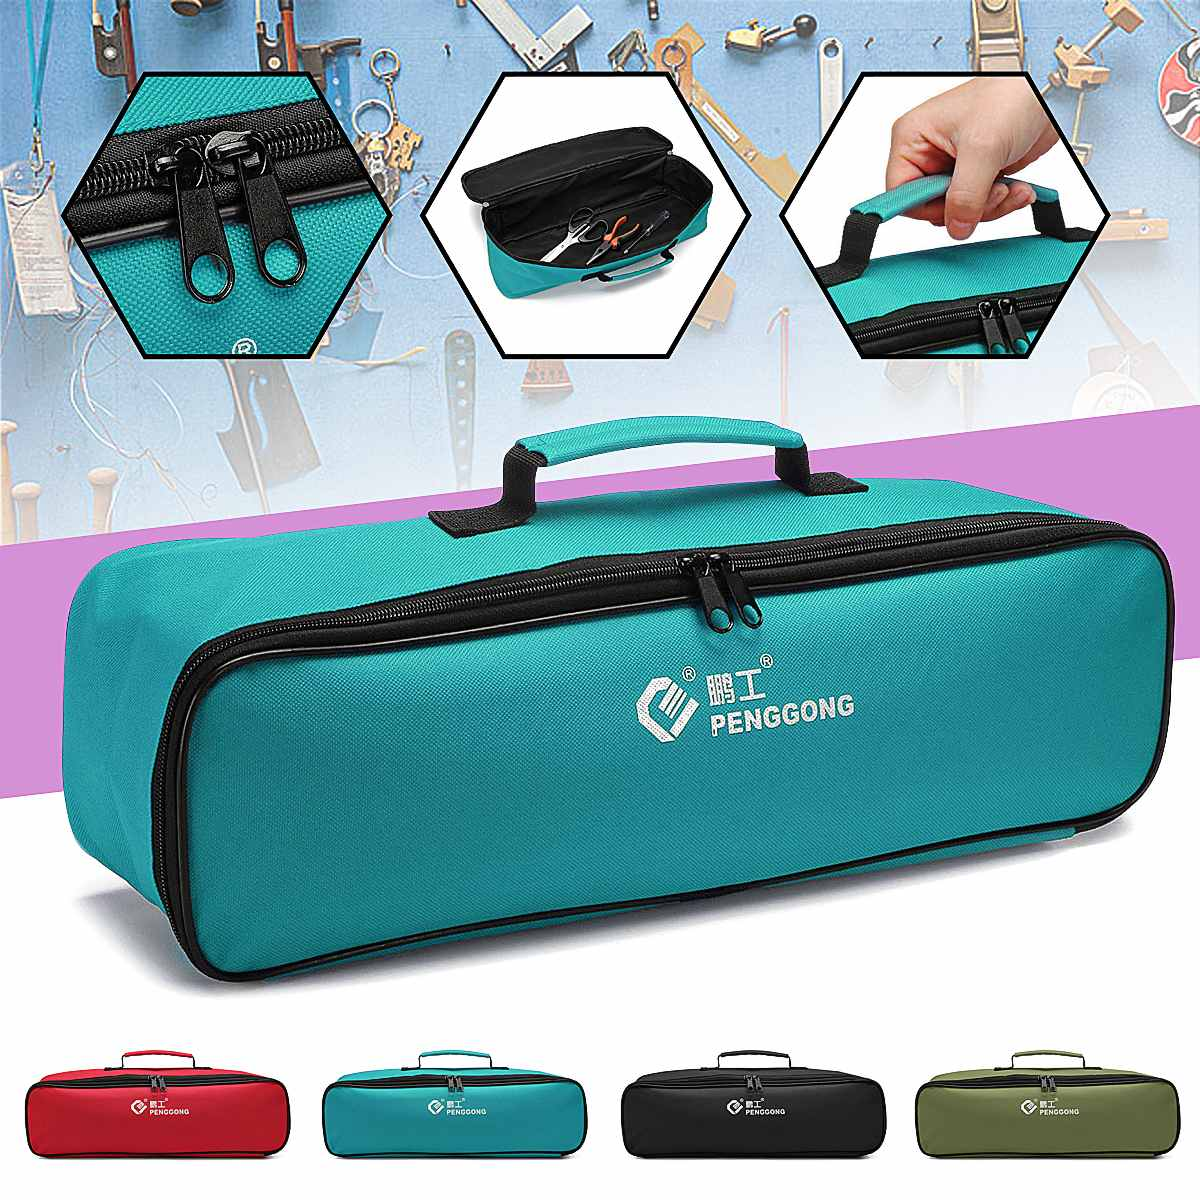 Oxford Cloth Waterproof Tool Bag Square Thick Electrician Tool Storage Bag Portable Toolbag Power Tool Organizer Pouch Bag Case